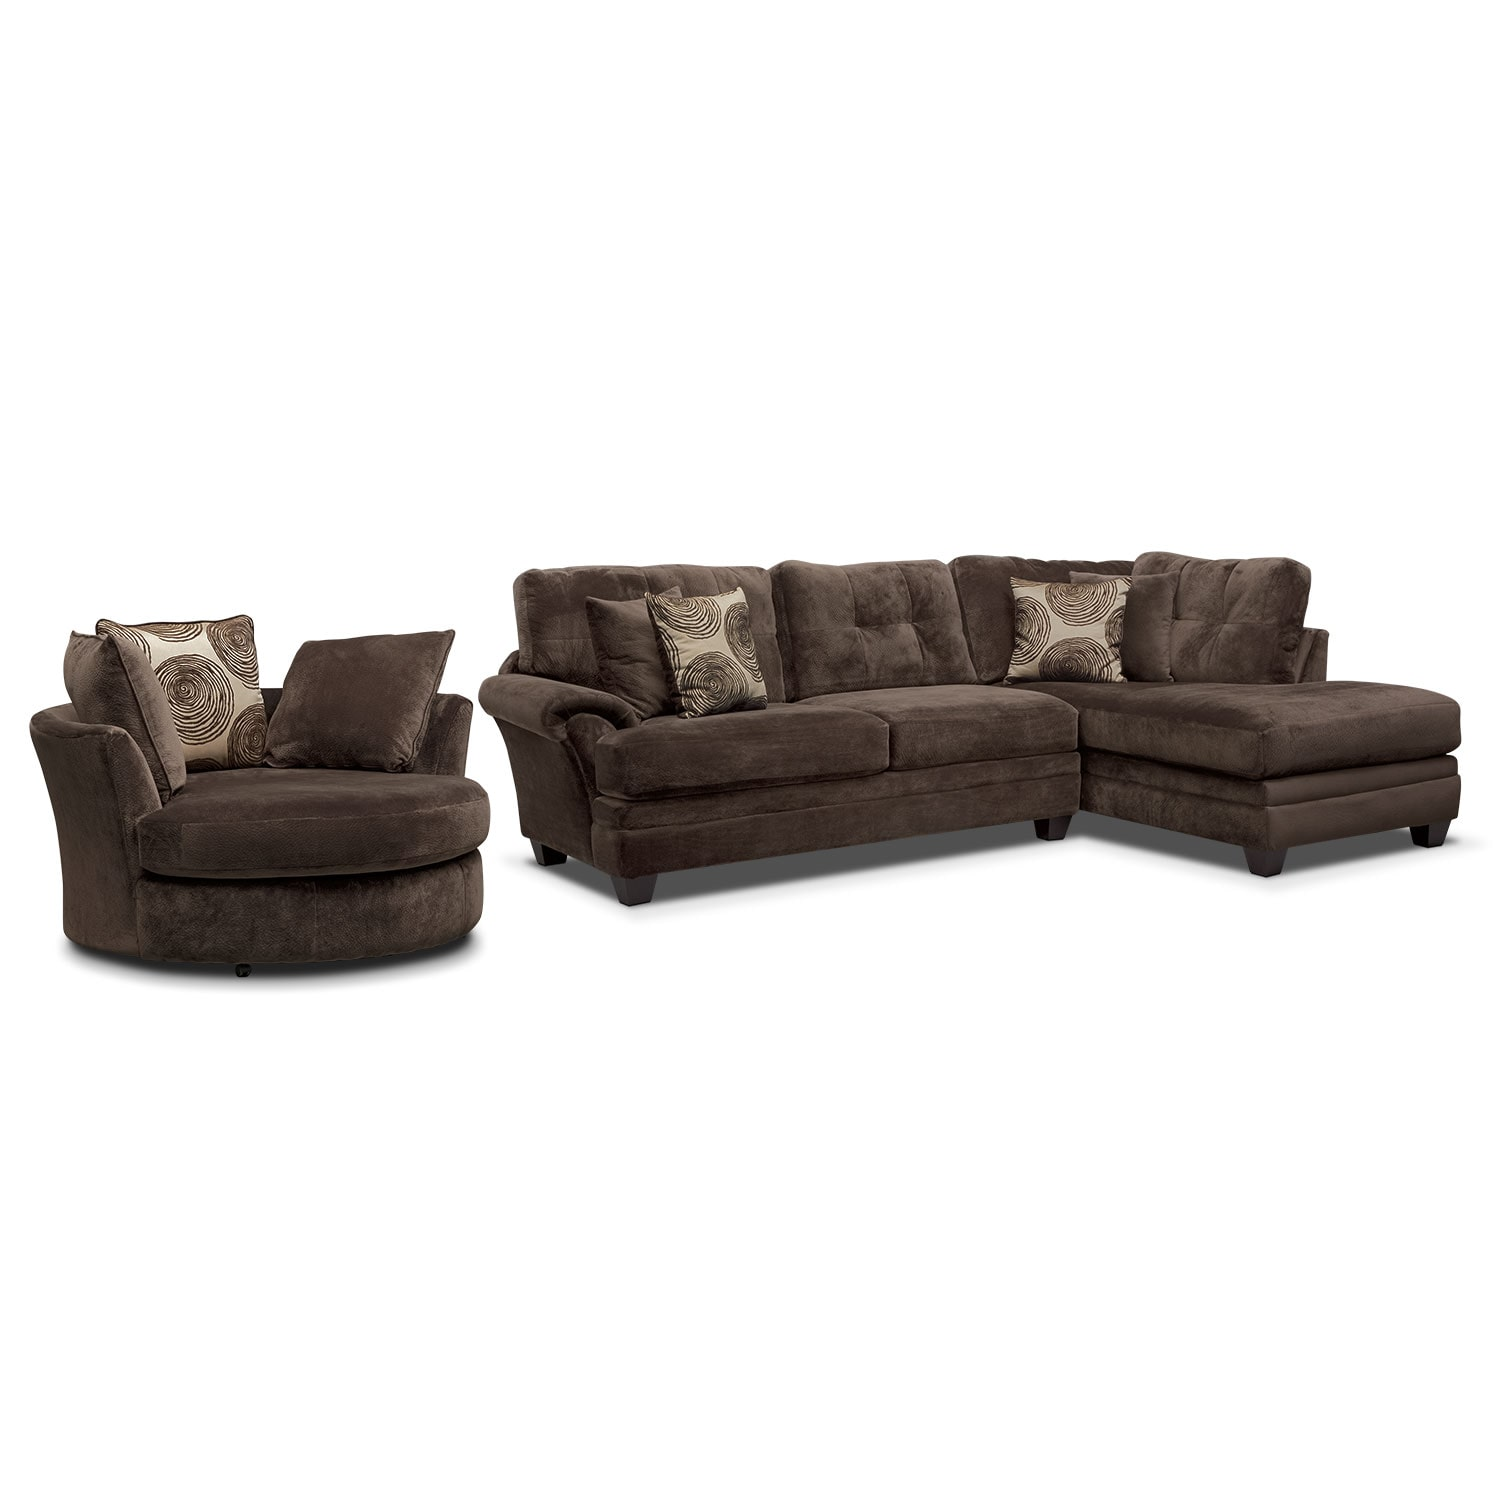 Living Room Furniture - Cordelle 2-Piece Right-Facing Chaise Sectional and Swivel Chair Set - Chocolate